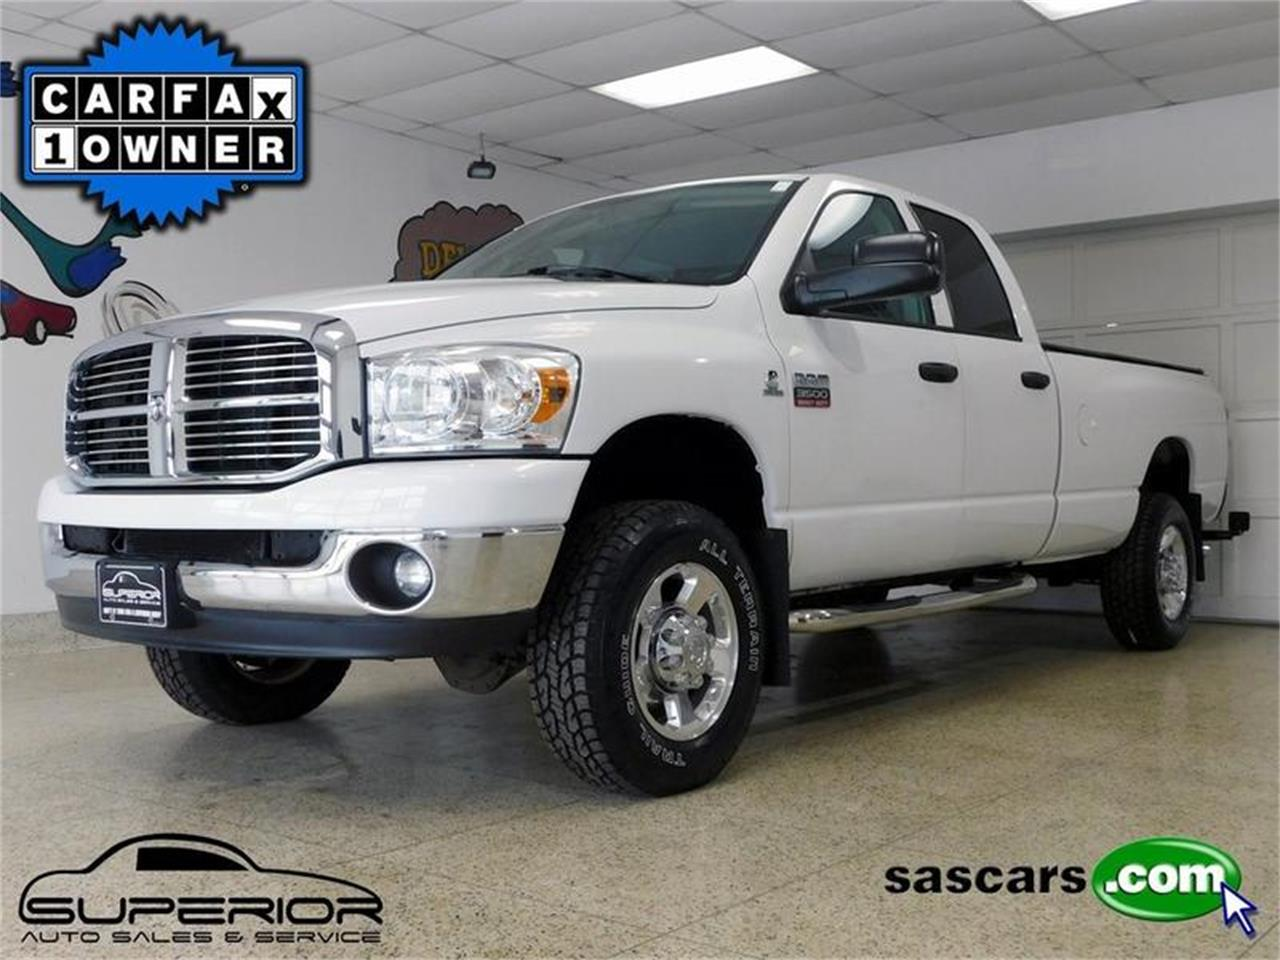 2009 Dodge Ram 3500 for sale in Hamburg, NY – photo 31